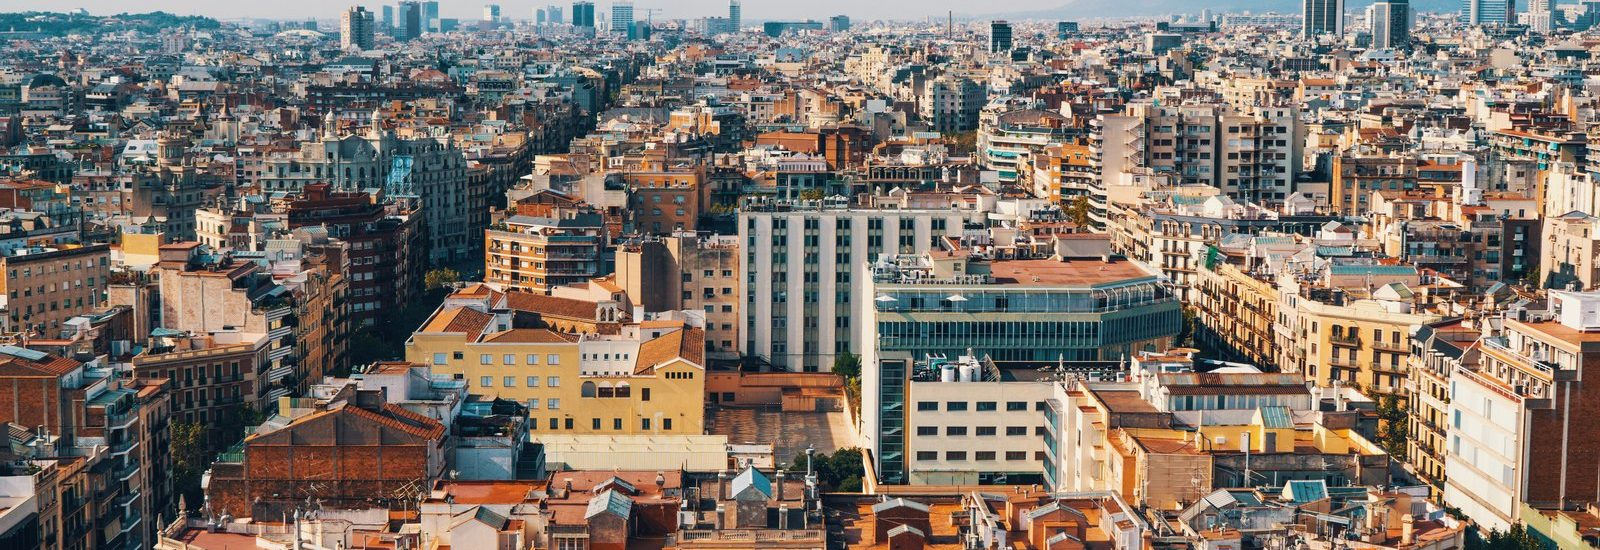 Eixample district by Erwan Hesry | Unsplash